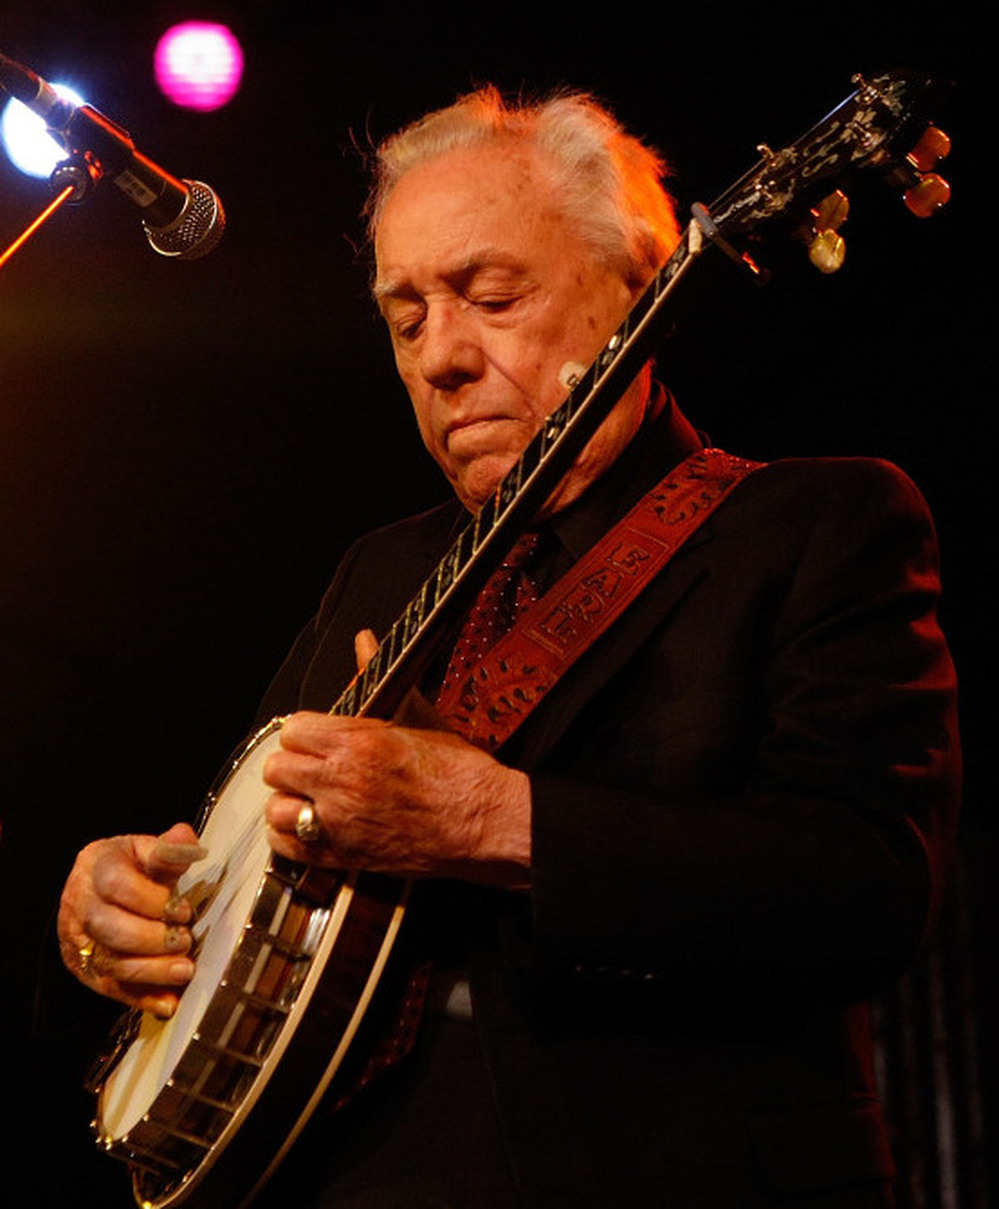 Earl Scruggs during a show in Indio, Calif., on May 3, 2008.